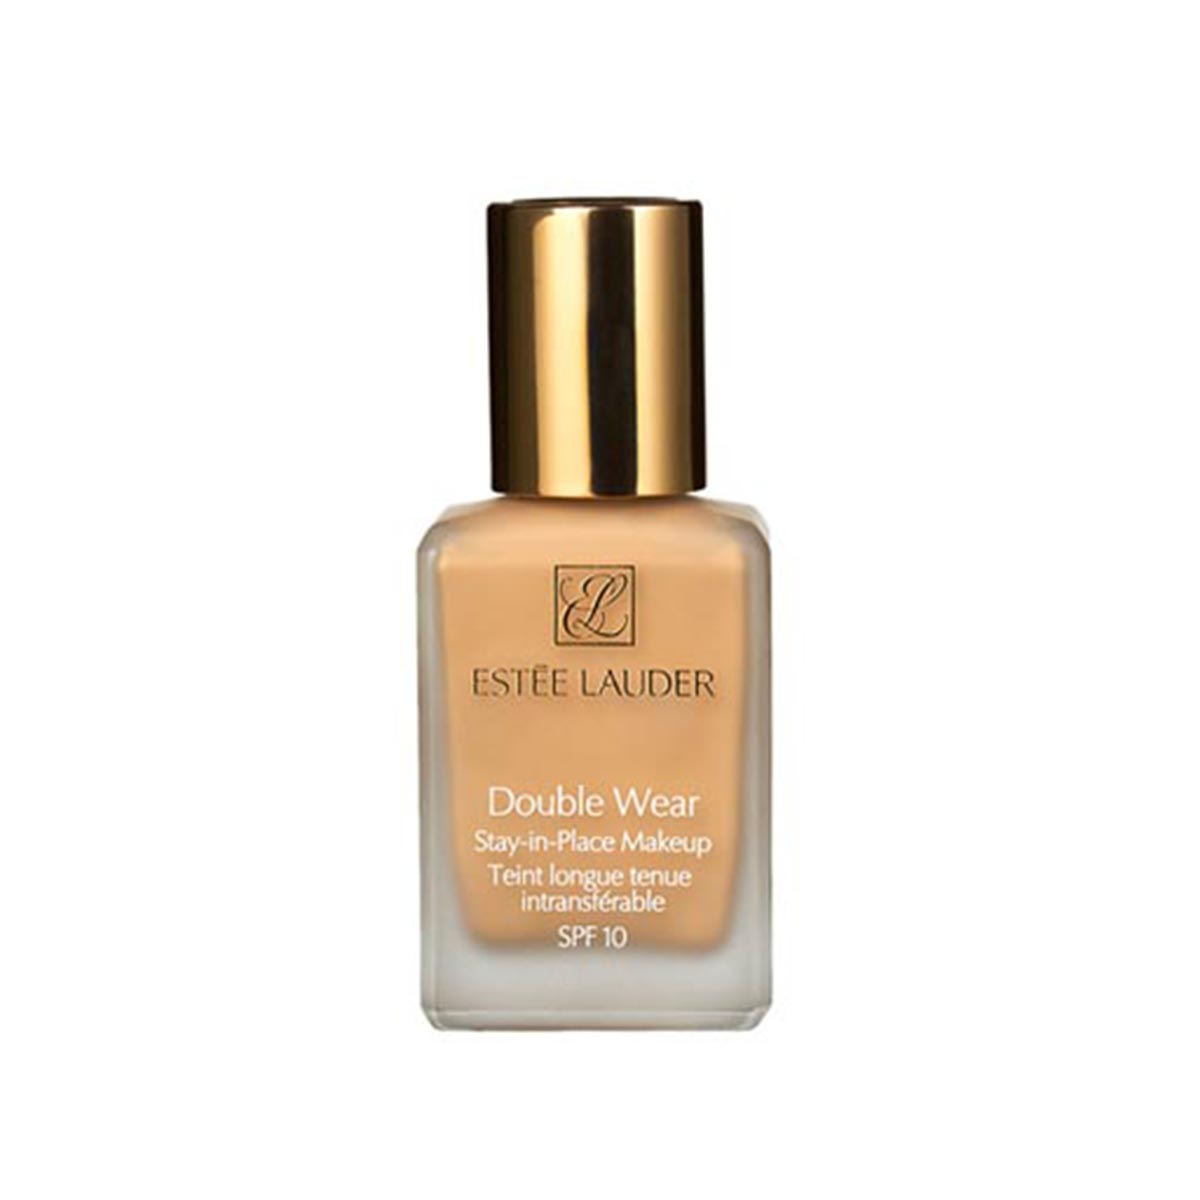 Estee lauder maquillaje double wear stay in place makeup spf10 4n2 spiced sand